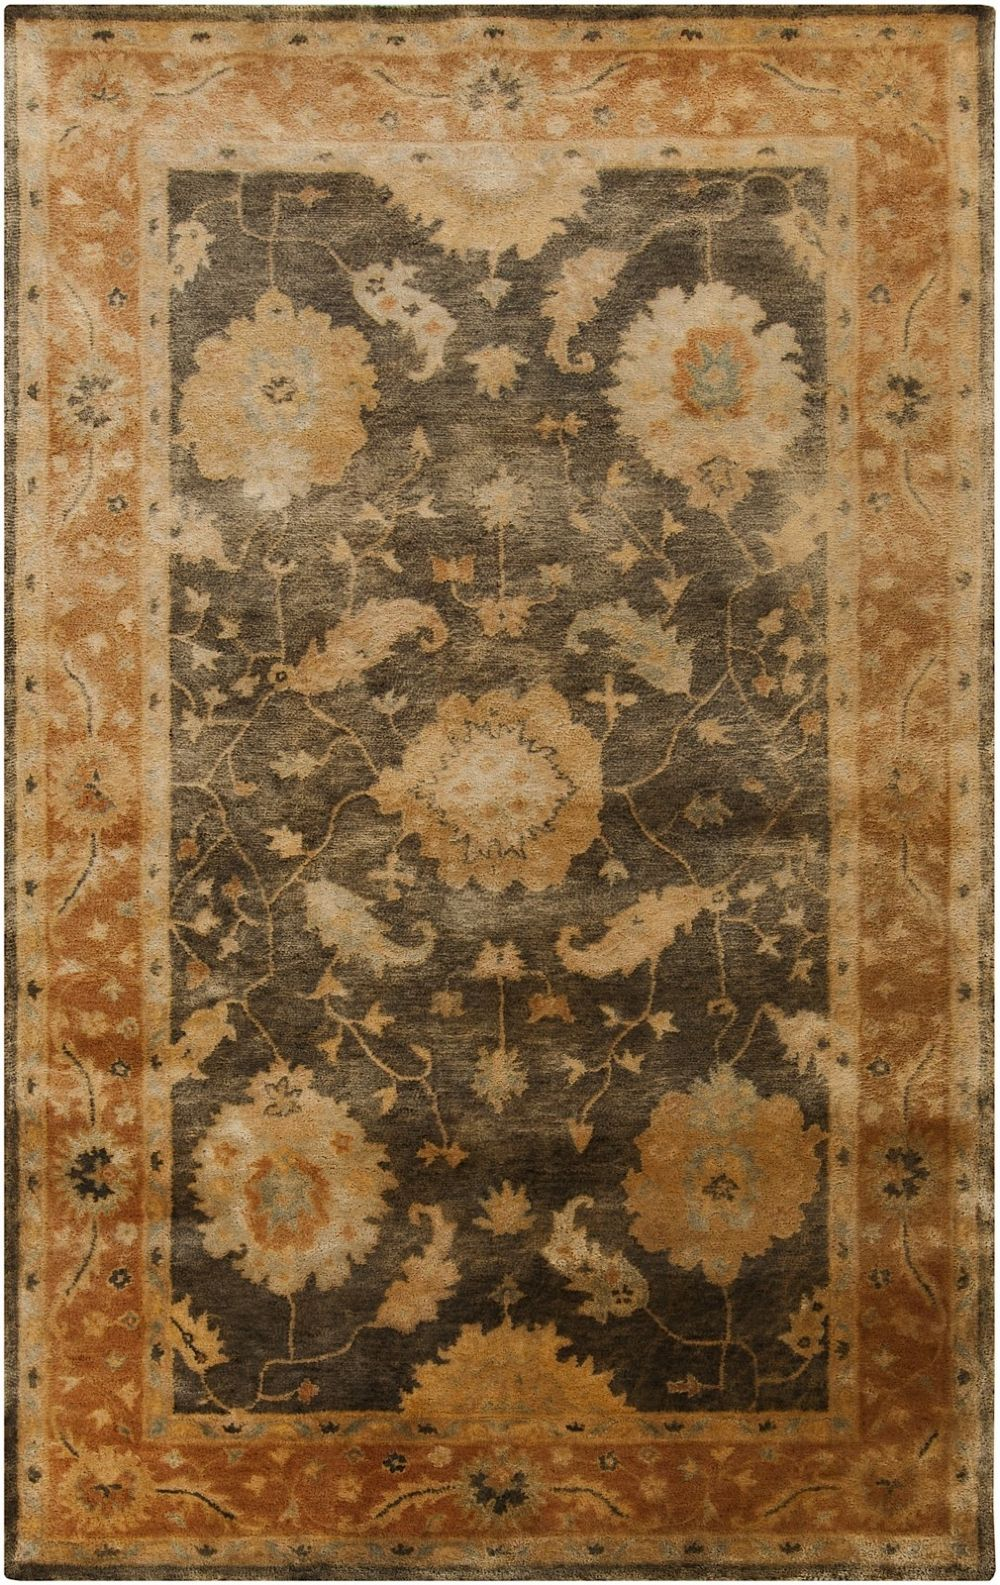 surya vintage traditional area rug collection